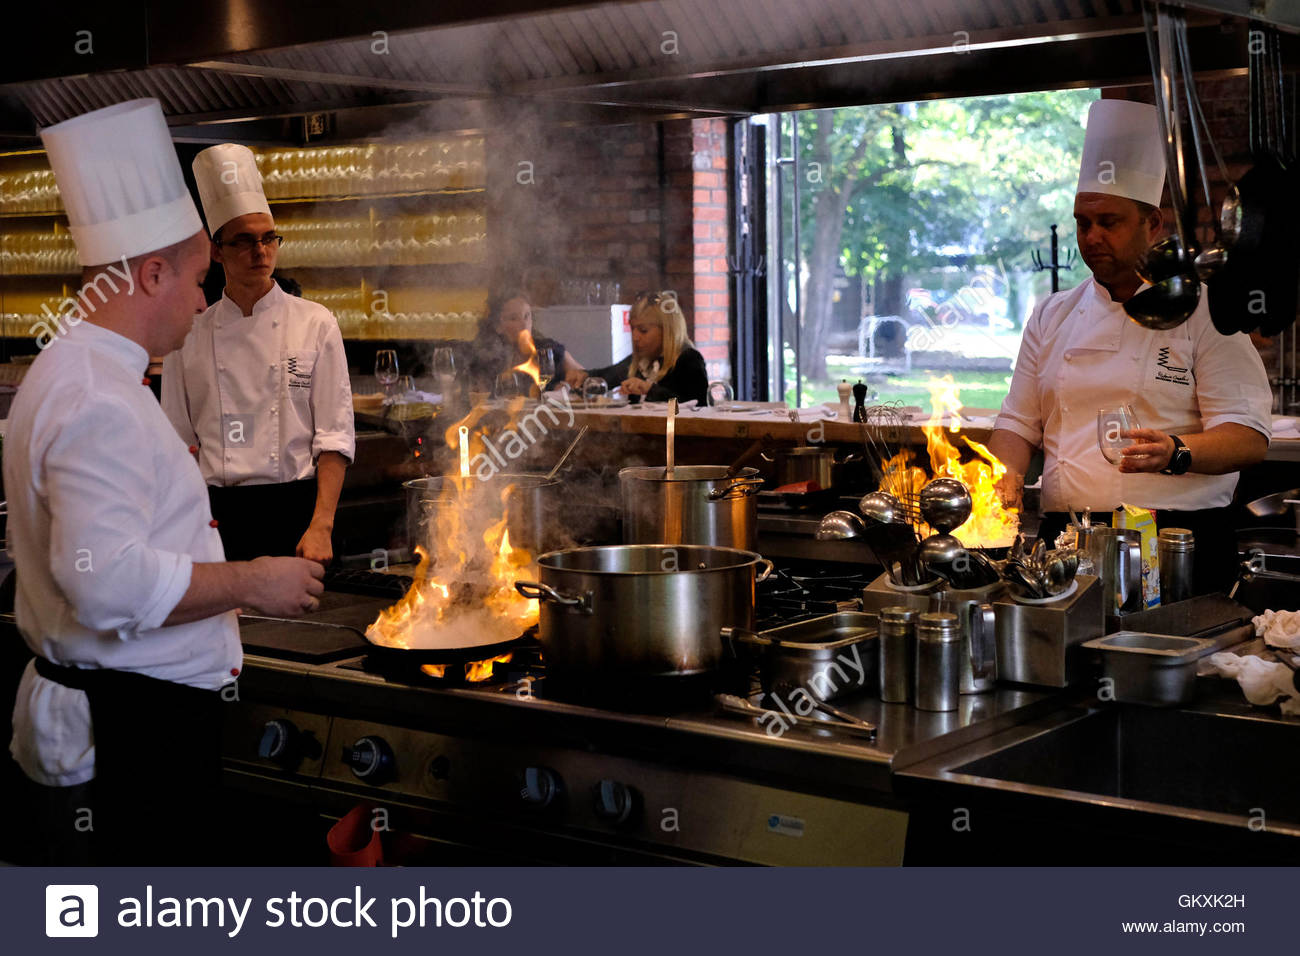 Restaurant Kitchen Staff kitchen staff at work in warszawa wschodnia restaurant located in